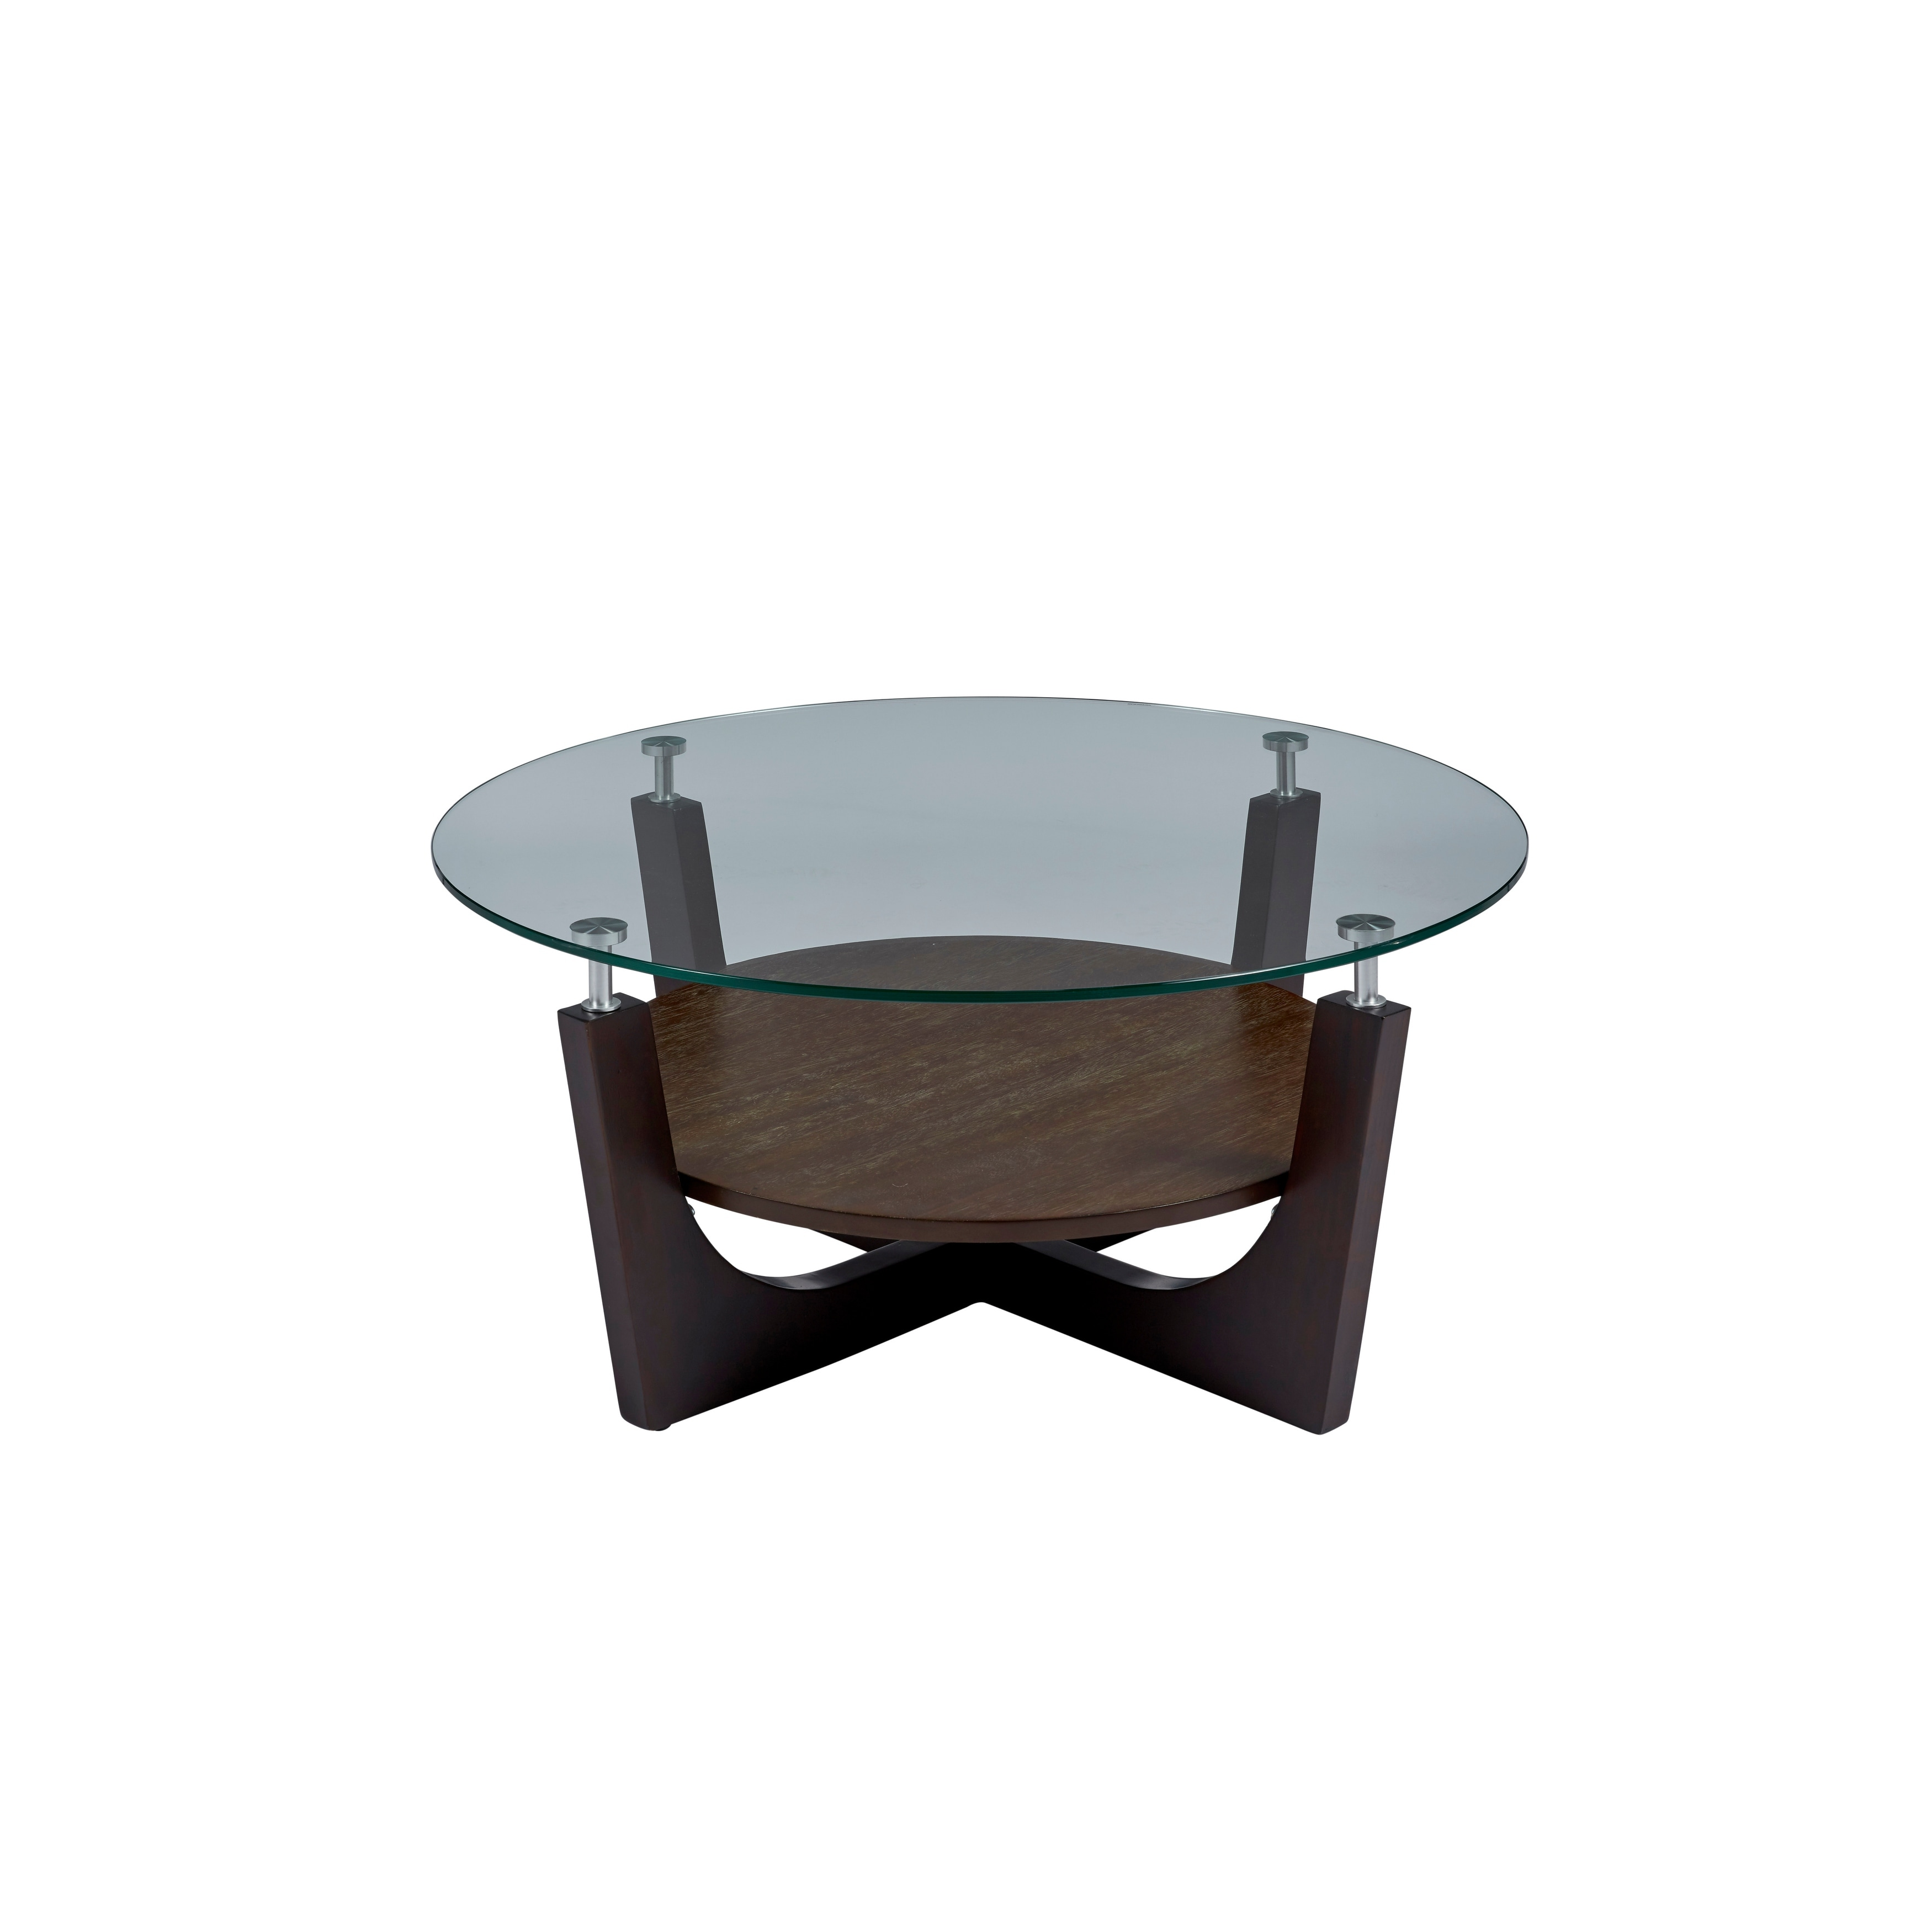 four points round glass top cocktail table 38x38x17 h